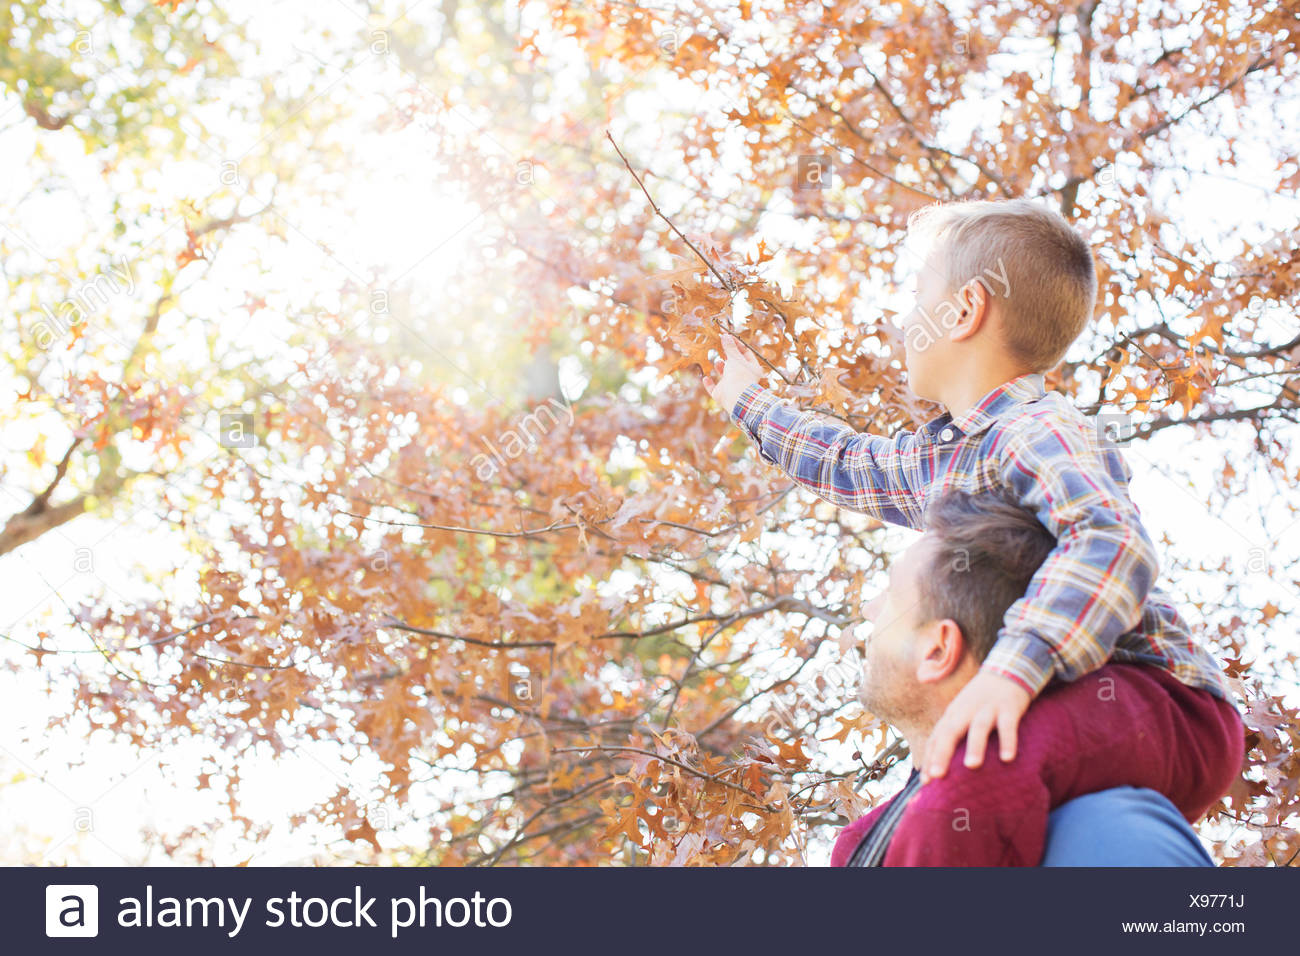 Father carrying son on shoulders reaching for autumn leaves - Stock Image